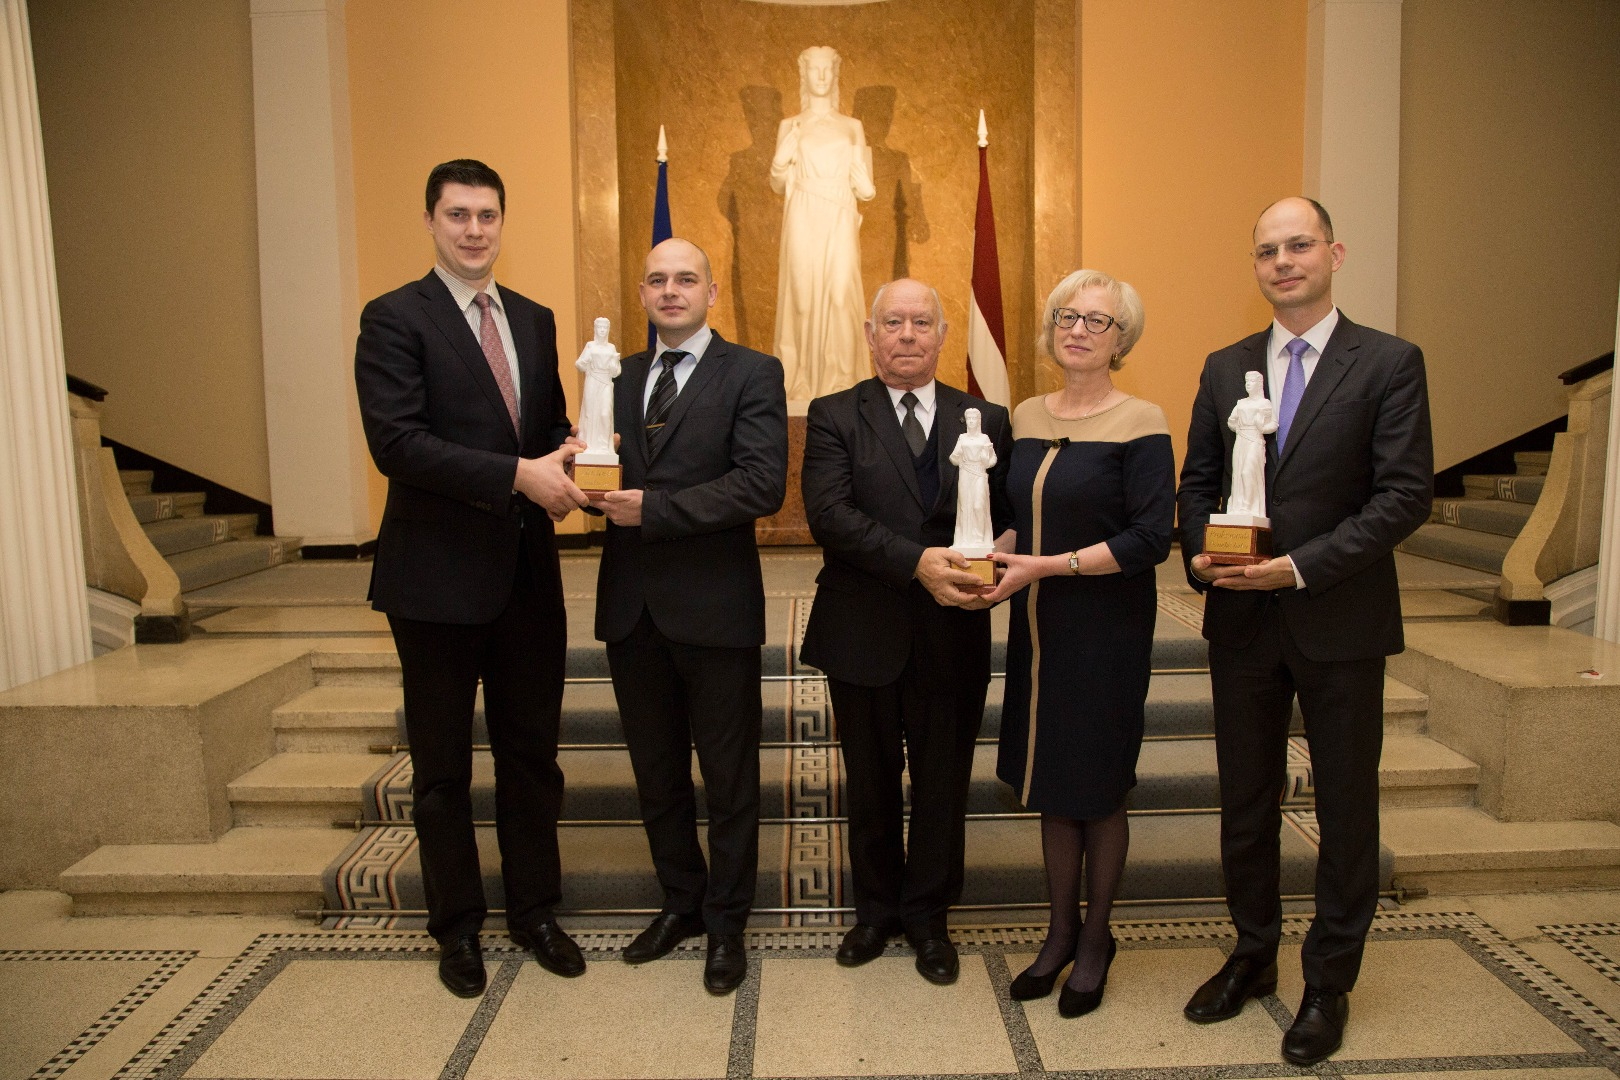 Themis Awards 2016: (from left) Creative Themis Award winners – Legal Research Counsels to the Department of Civil Cases, Rihards Gulbis, and the Department of Criminal Cases, Janis Baumanis; Special Themis Award winners - the Chamber of Civil Cases (former Chairs of the Chamber (holding the awards) Gunars Aigars and Ineta Ozola); and winner of Professional Themis Award – Judge of the Department of Administrative Cases Janis Neimanis